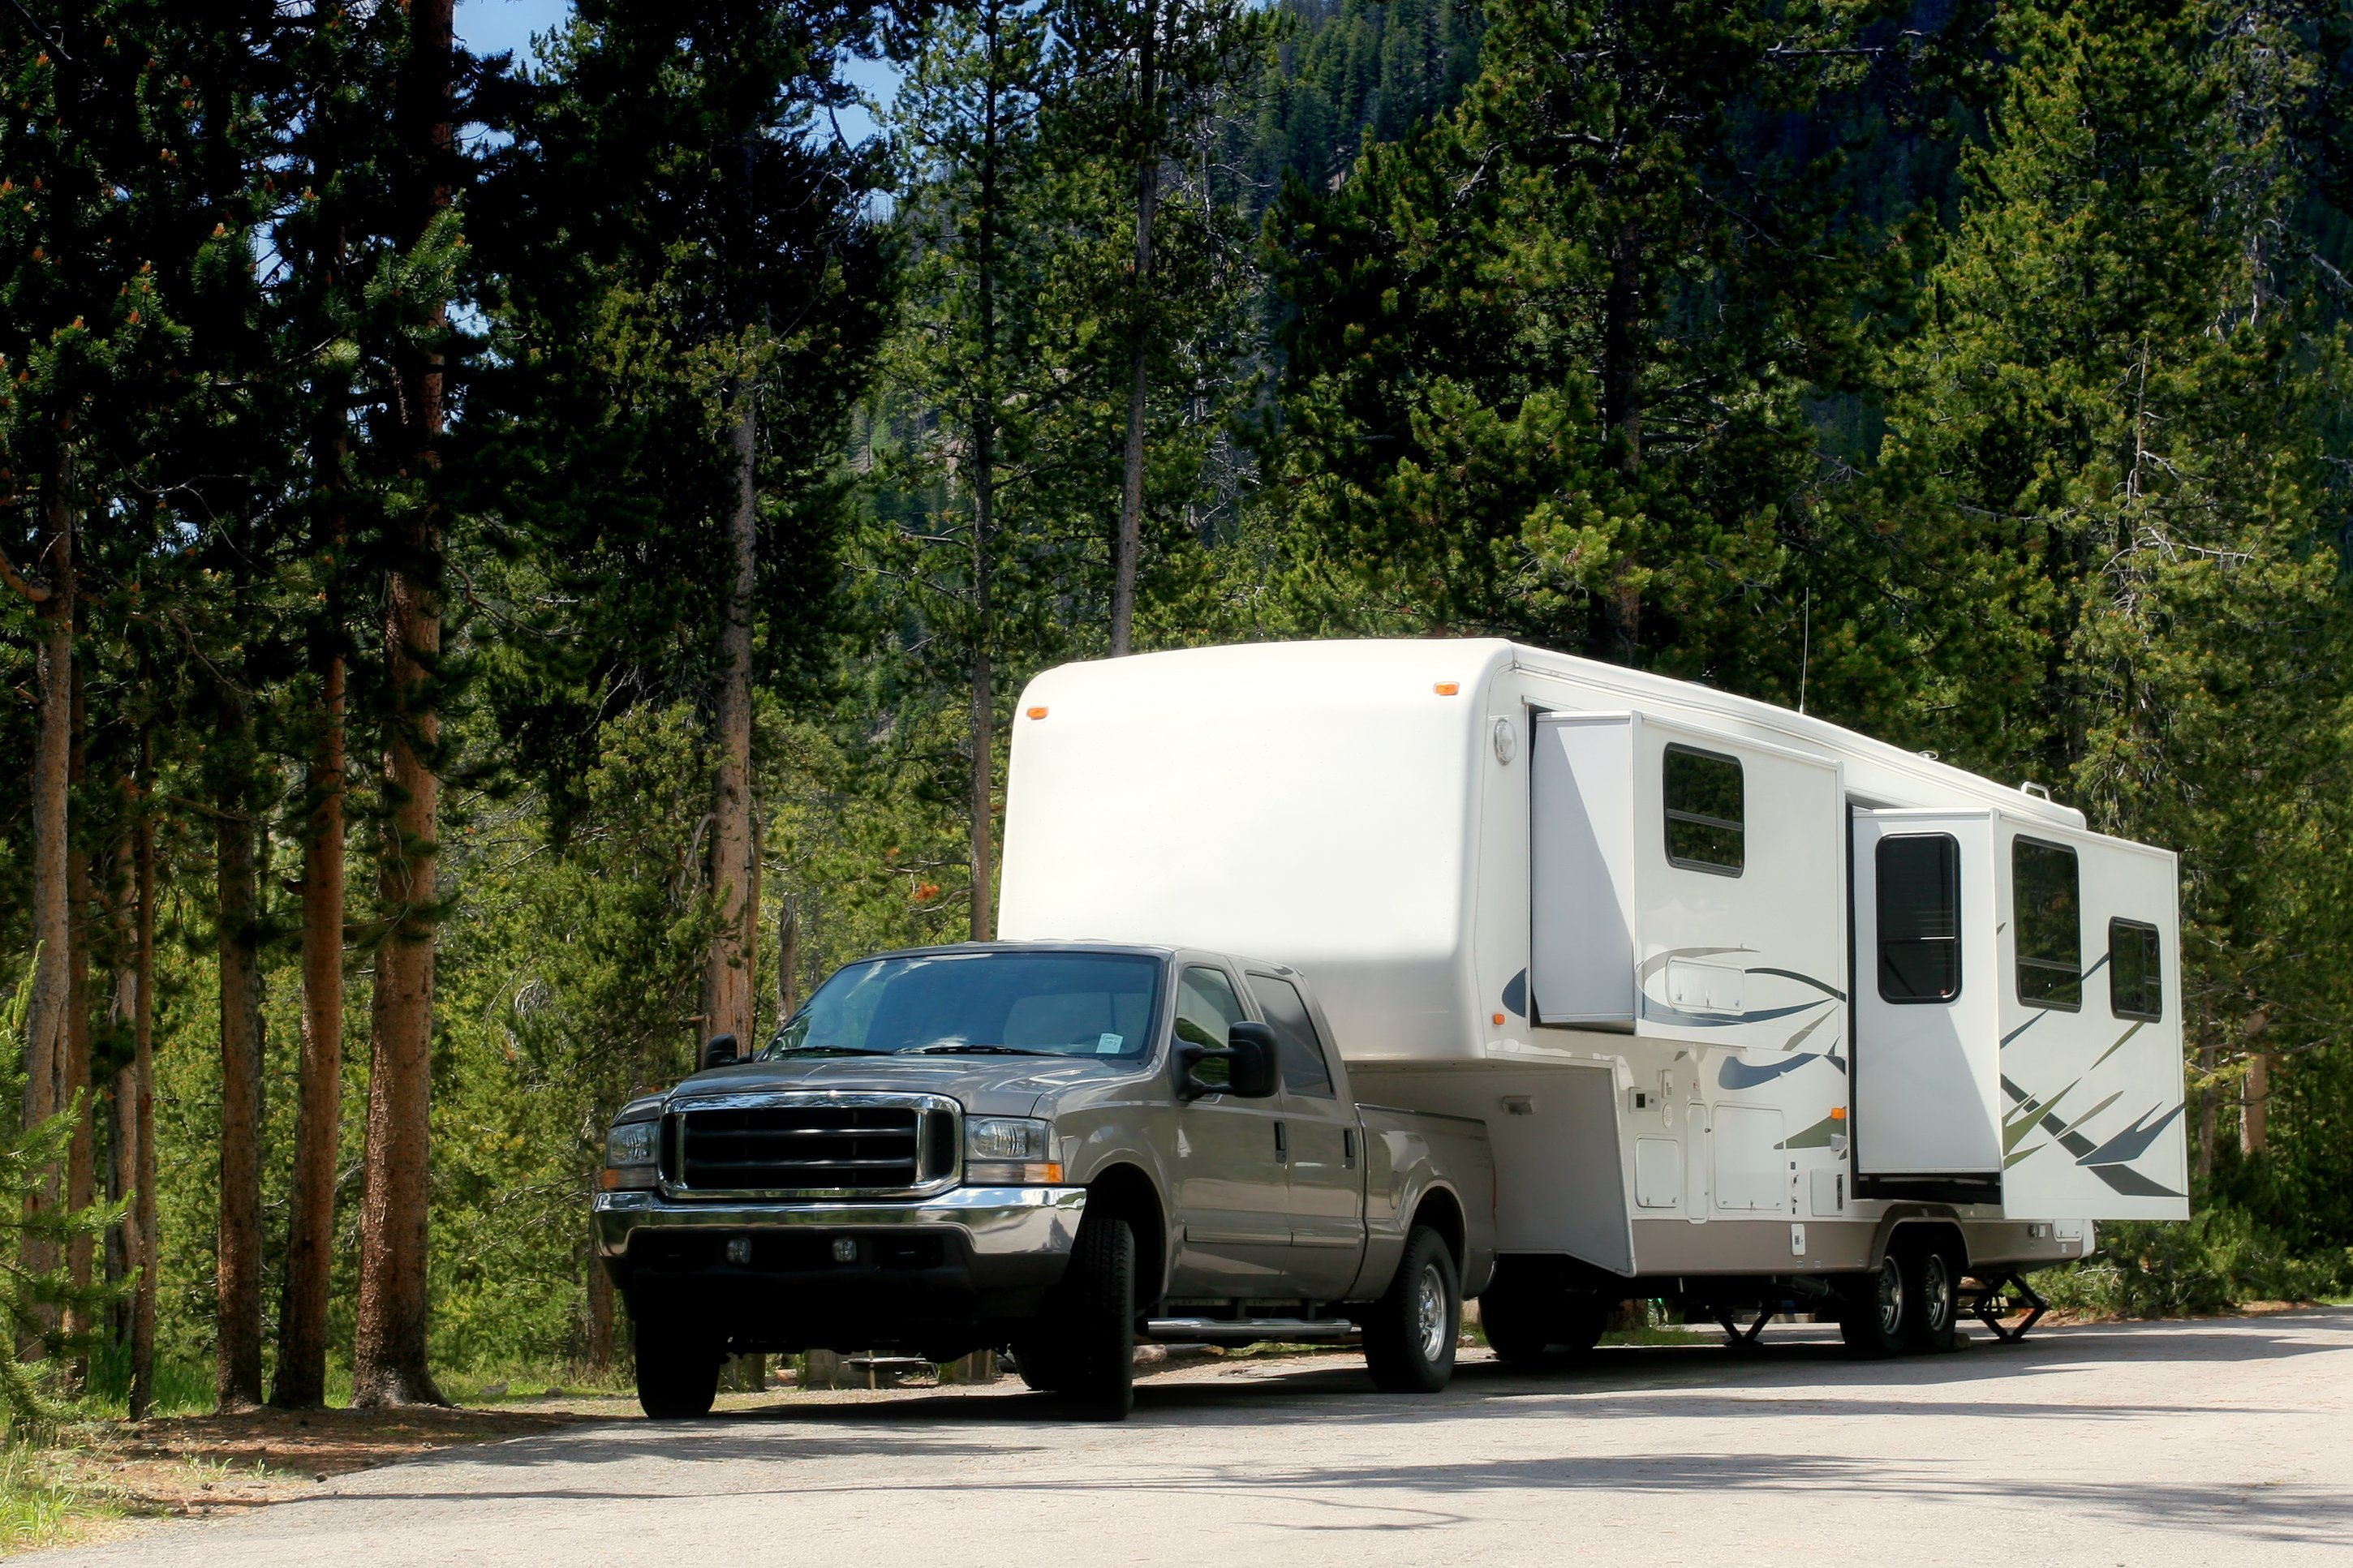 Tips for Driving While Towing a Trailer